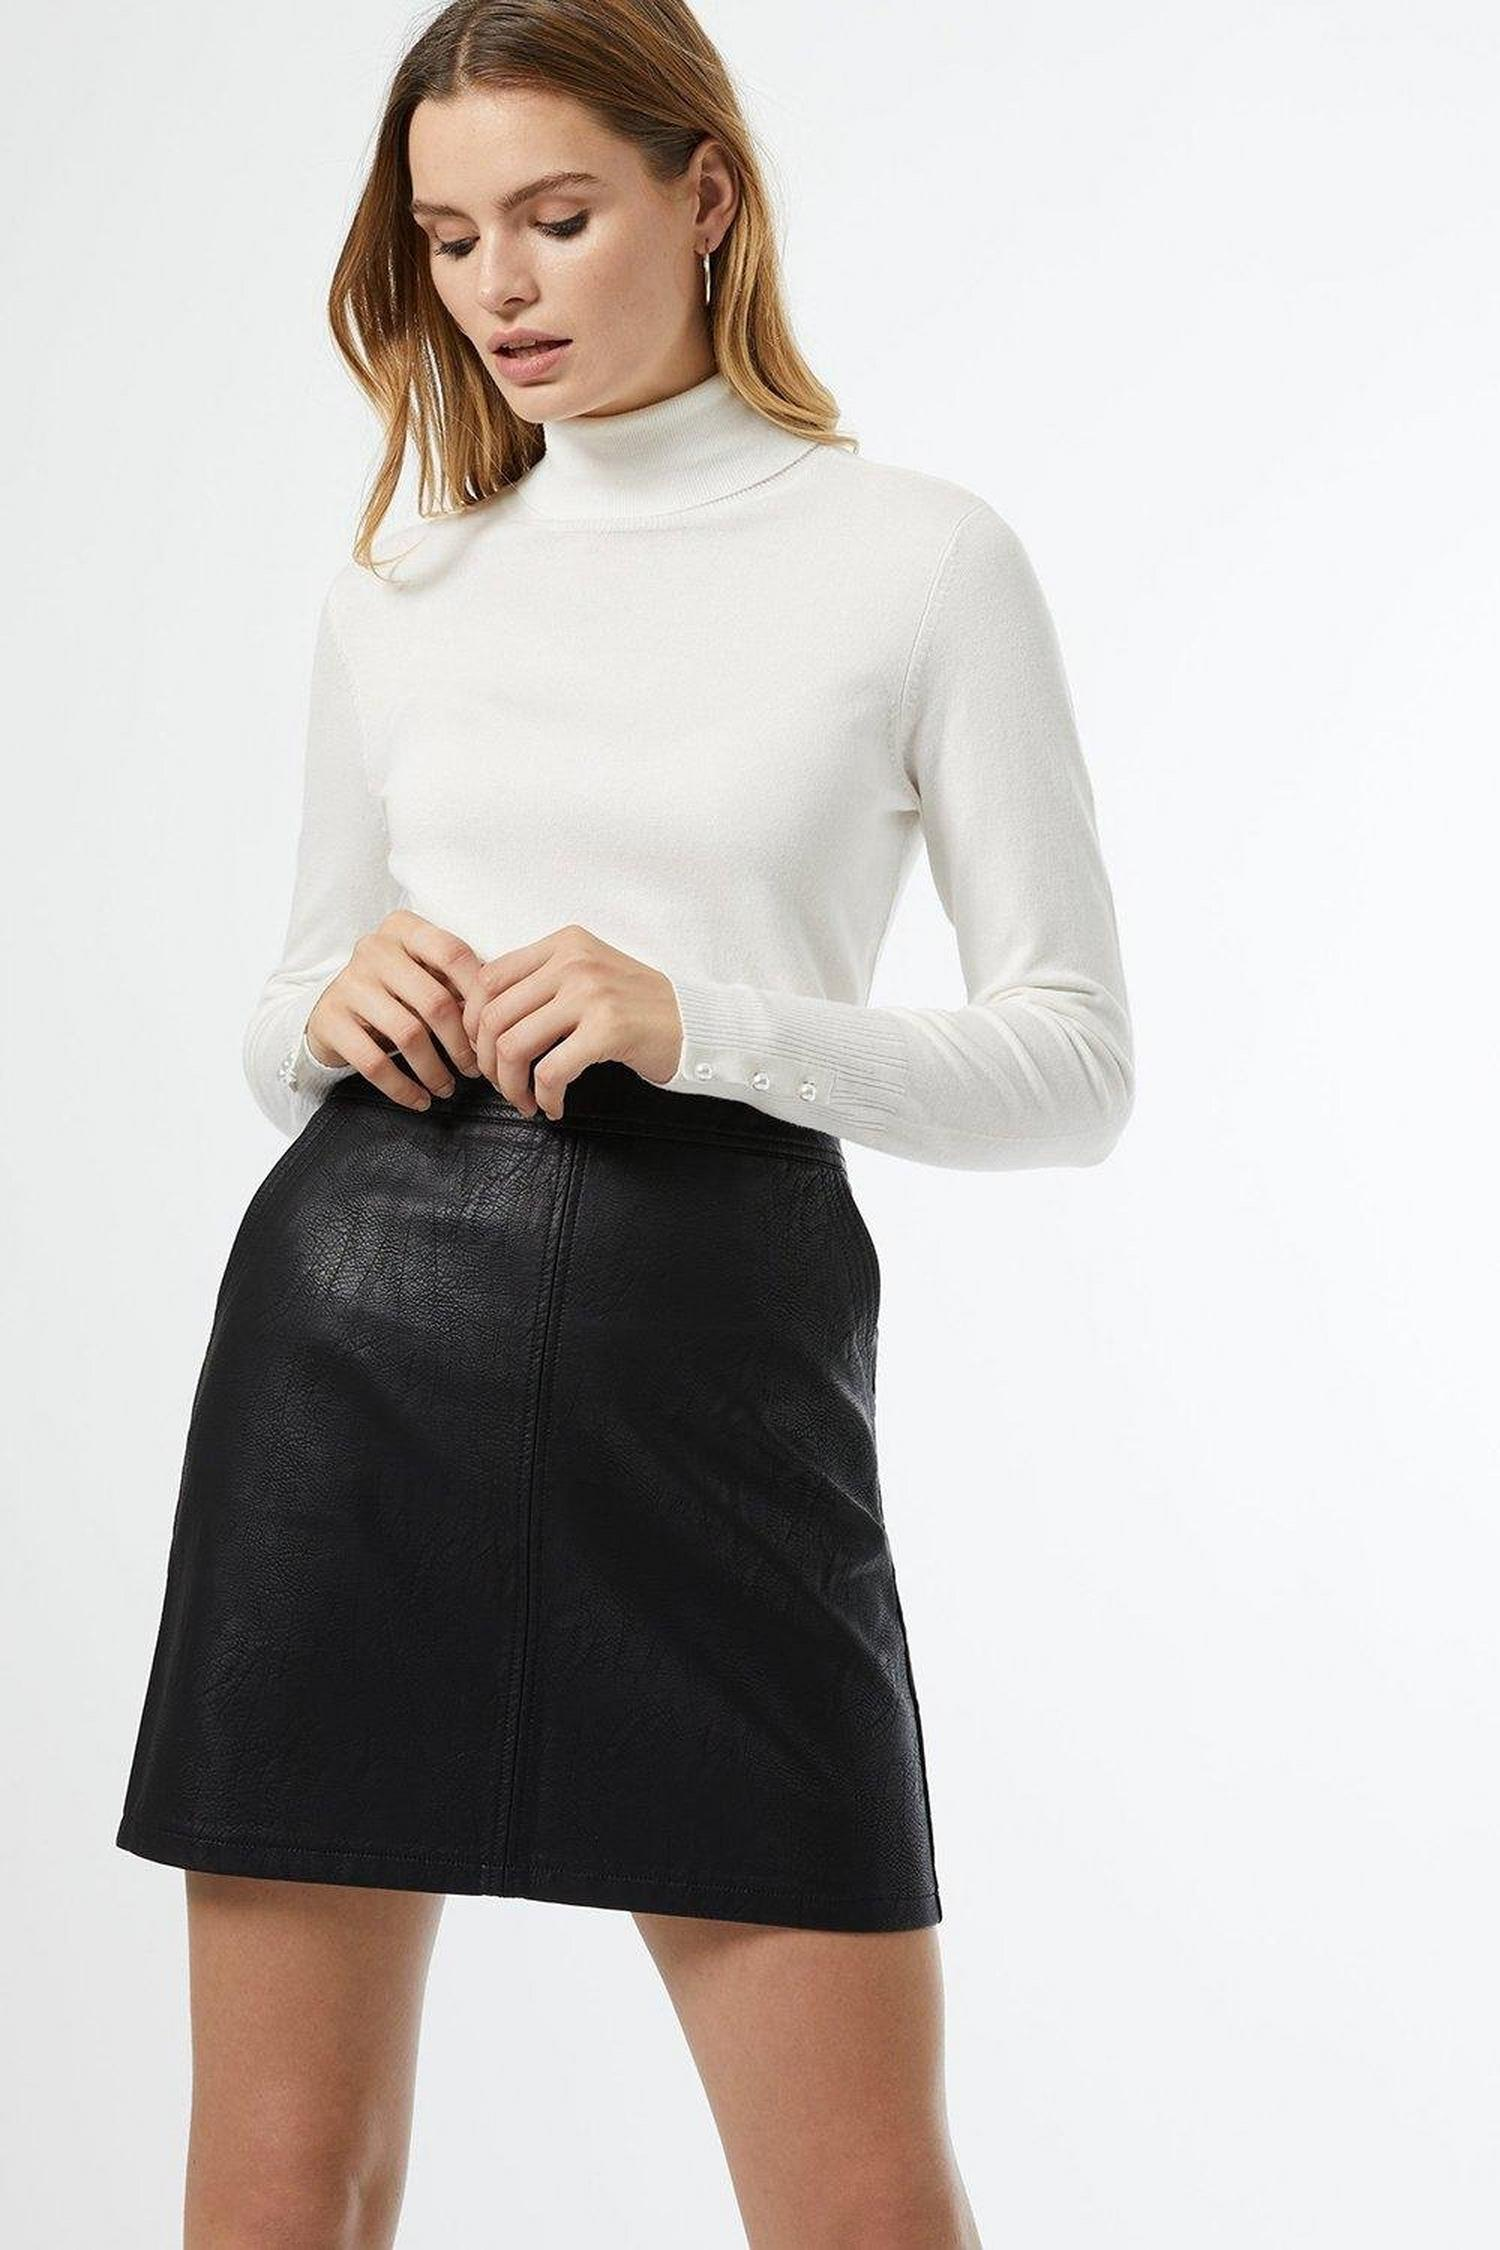 105 Black Faux Leather Pocket Mini Skirt image number 1